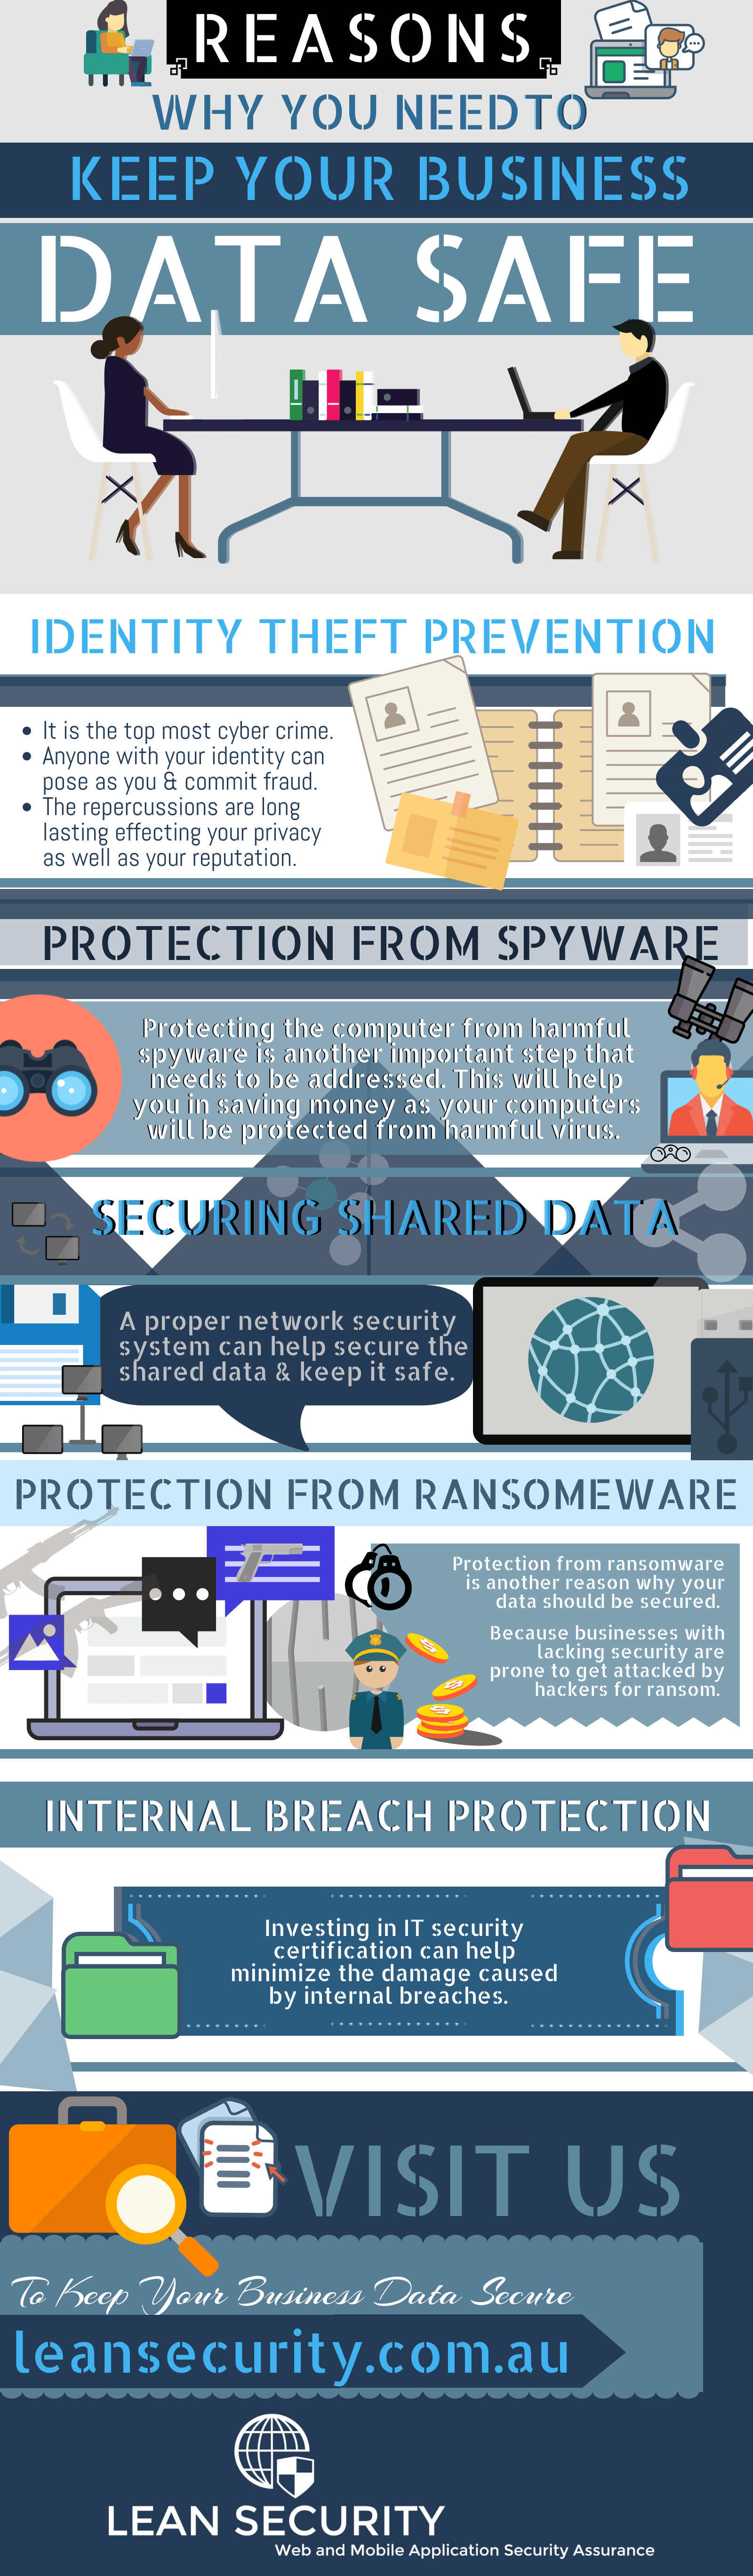 Reasons Why You Need To Keep Your Business Data Safe.png